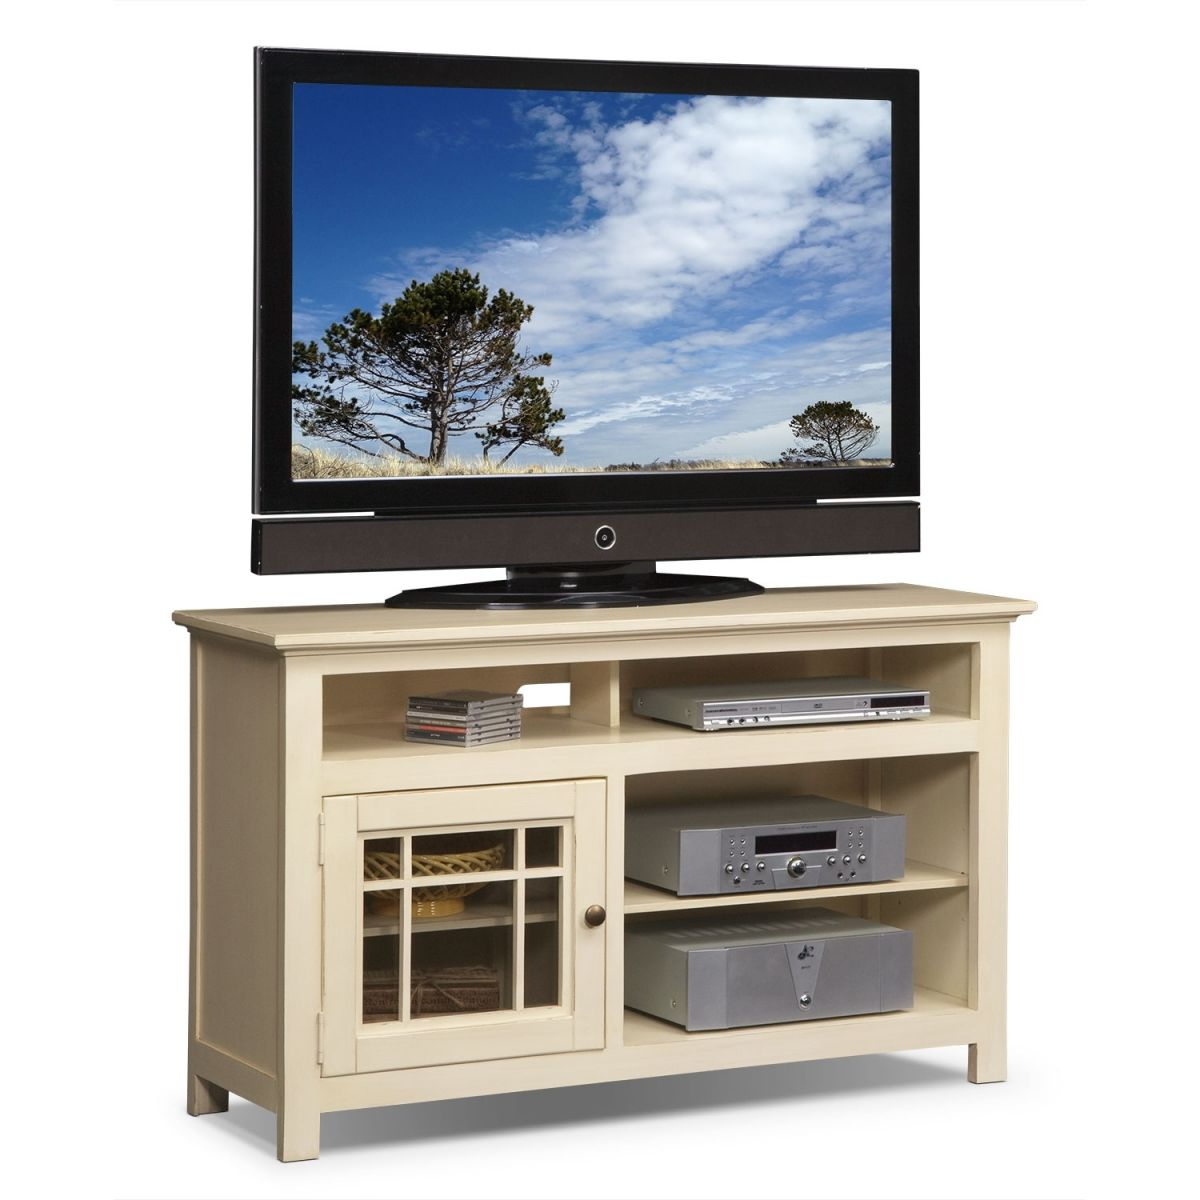 Merrick Tv Stand for Furniture Tv Stands